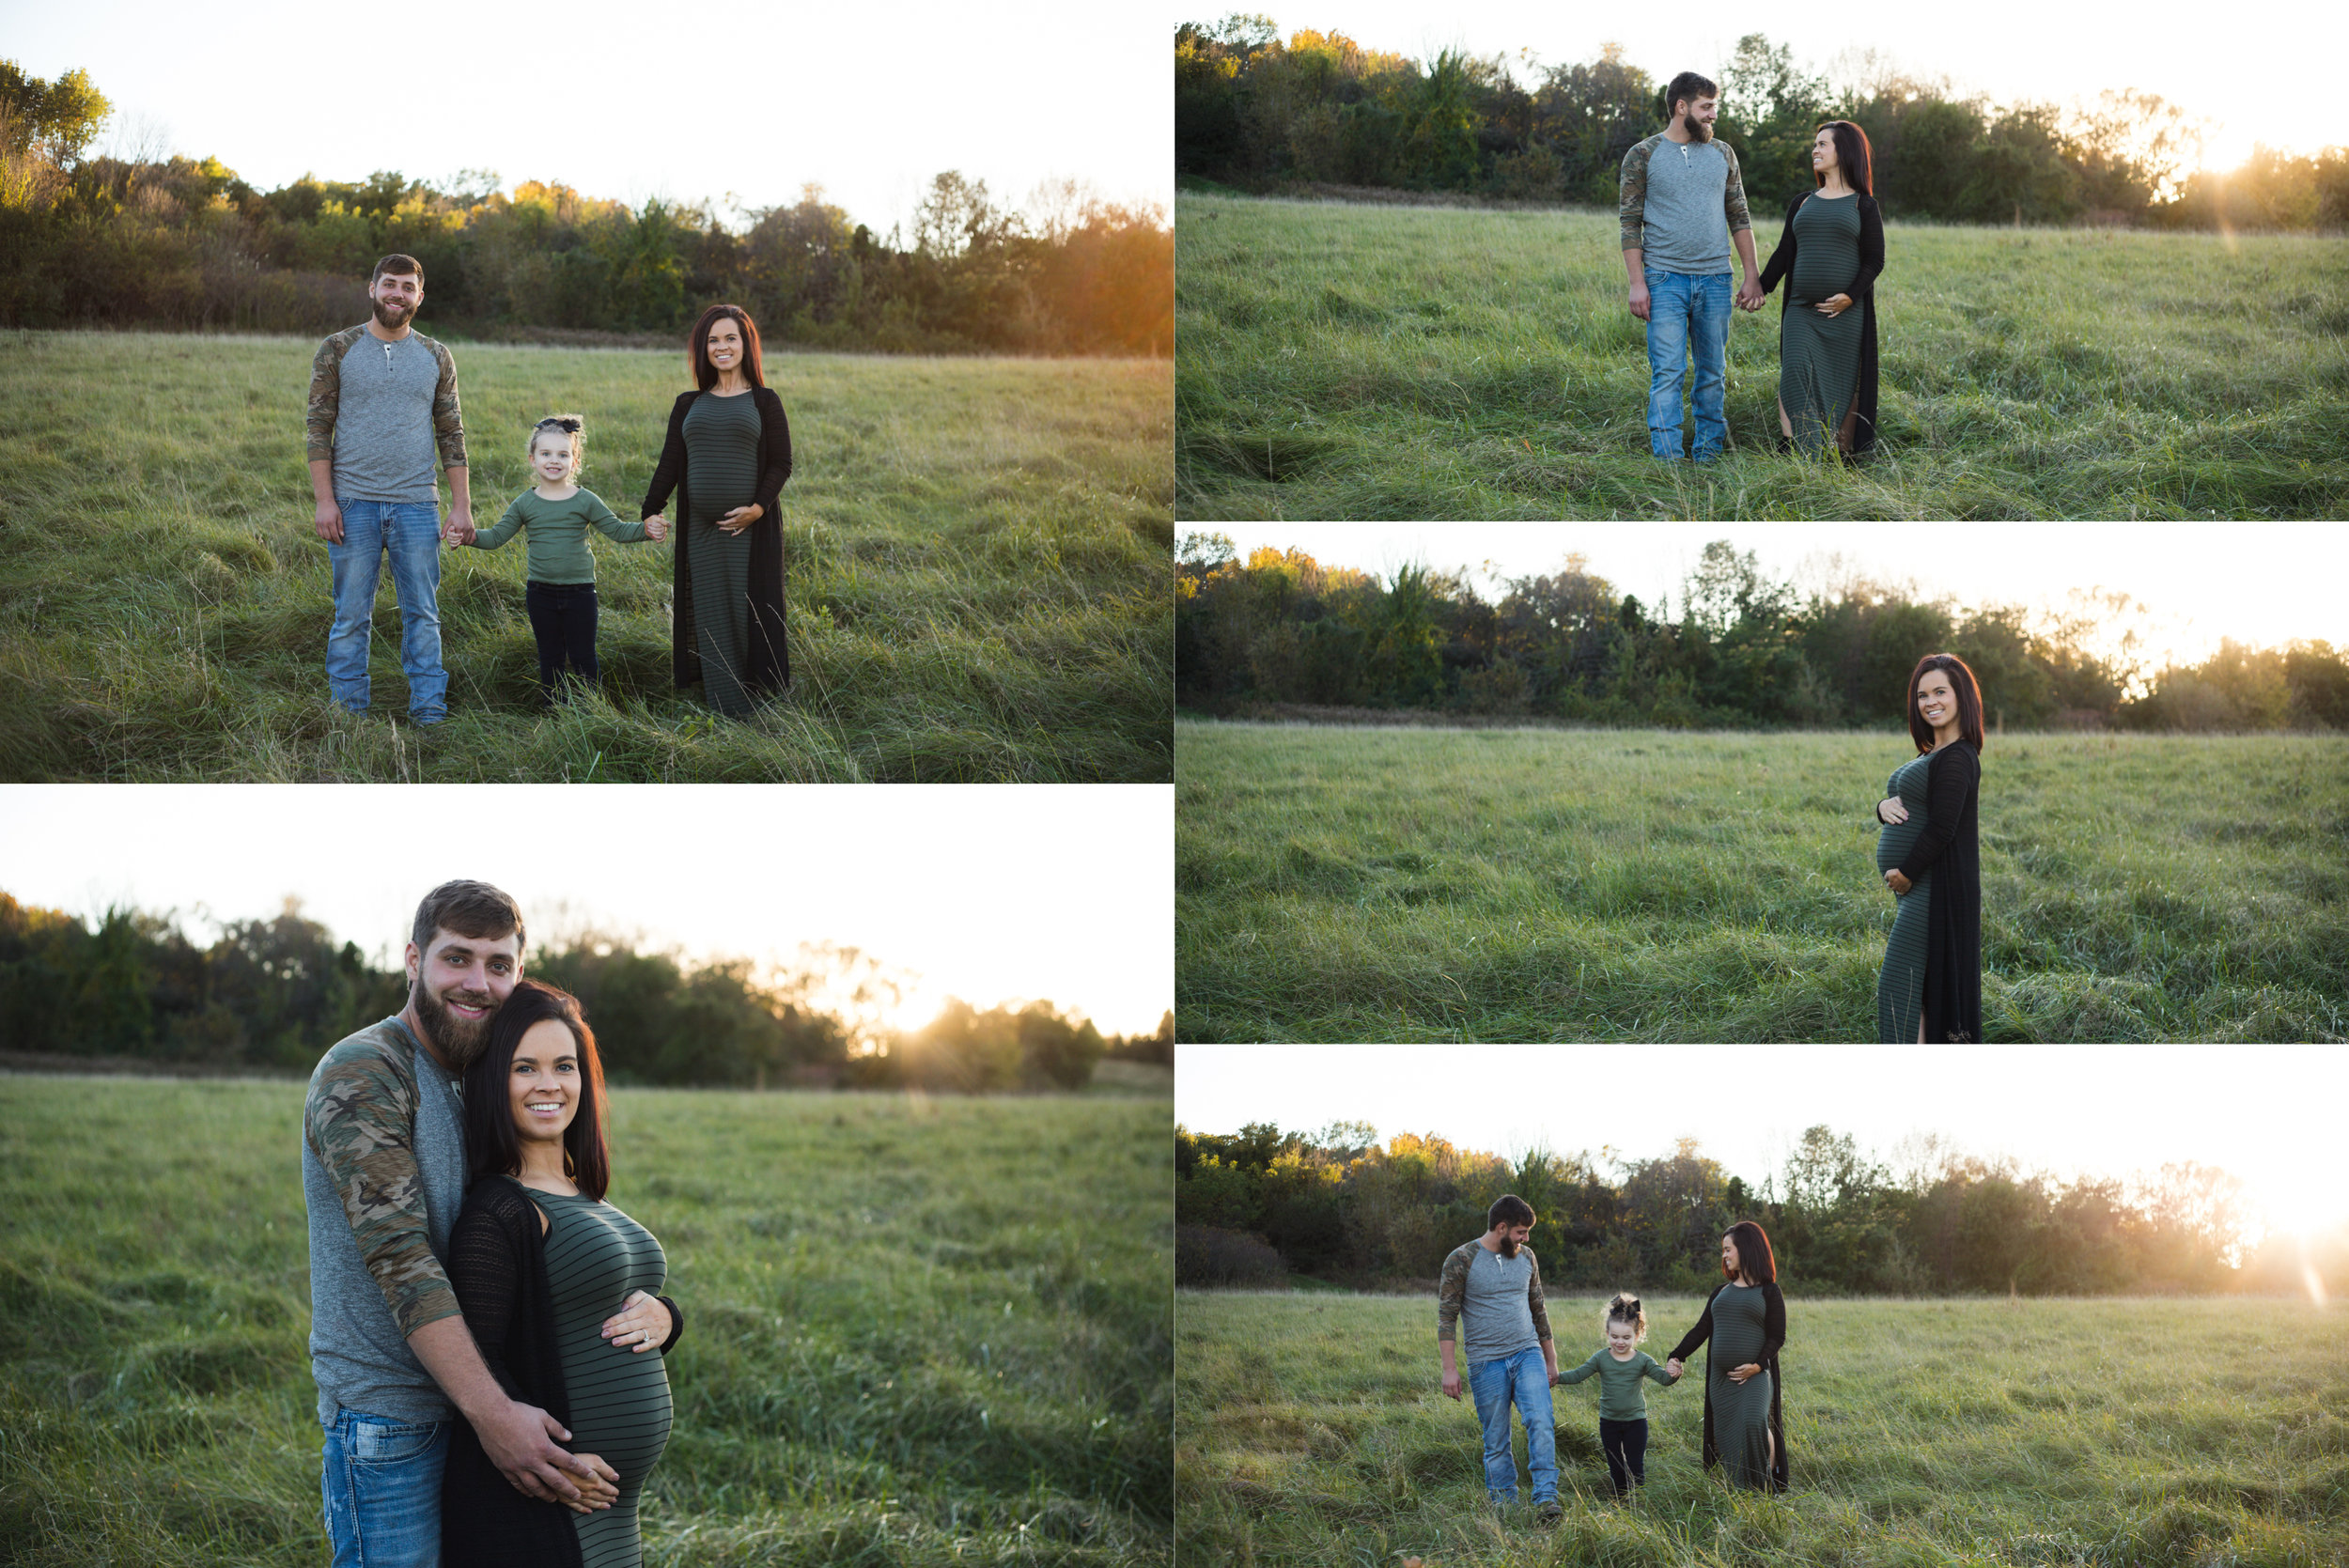 A family of three holding hands and walking during a maternity photo session in Cedar Rapids, Iowa.